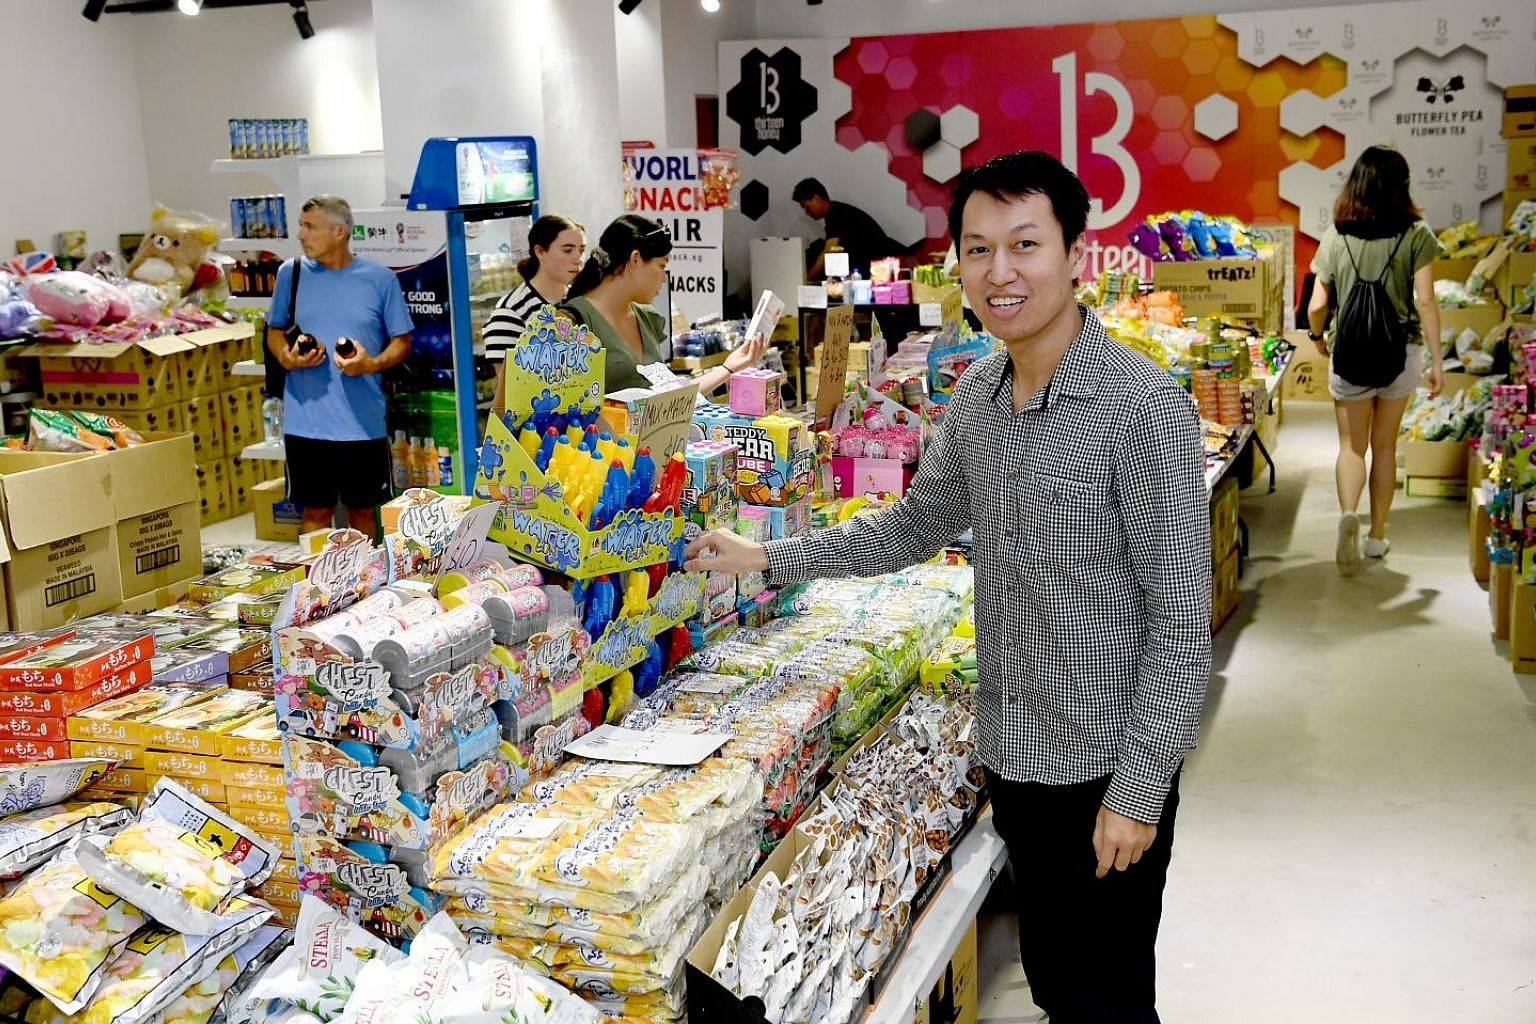 Mr Nelson Ng Hsueh Chin borrowed about $200,000 through Funding Societies to run his business of importing snacks.